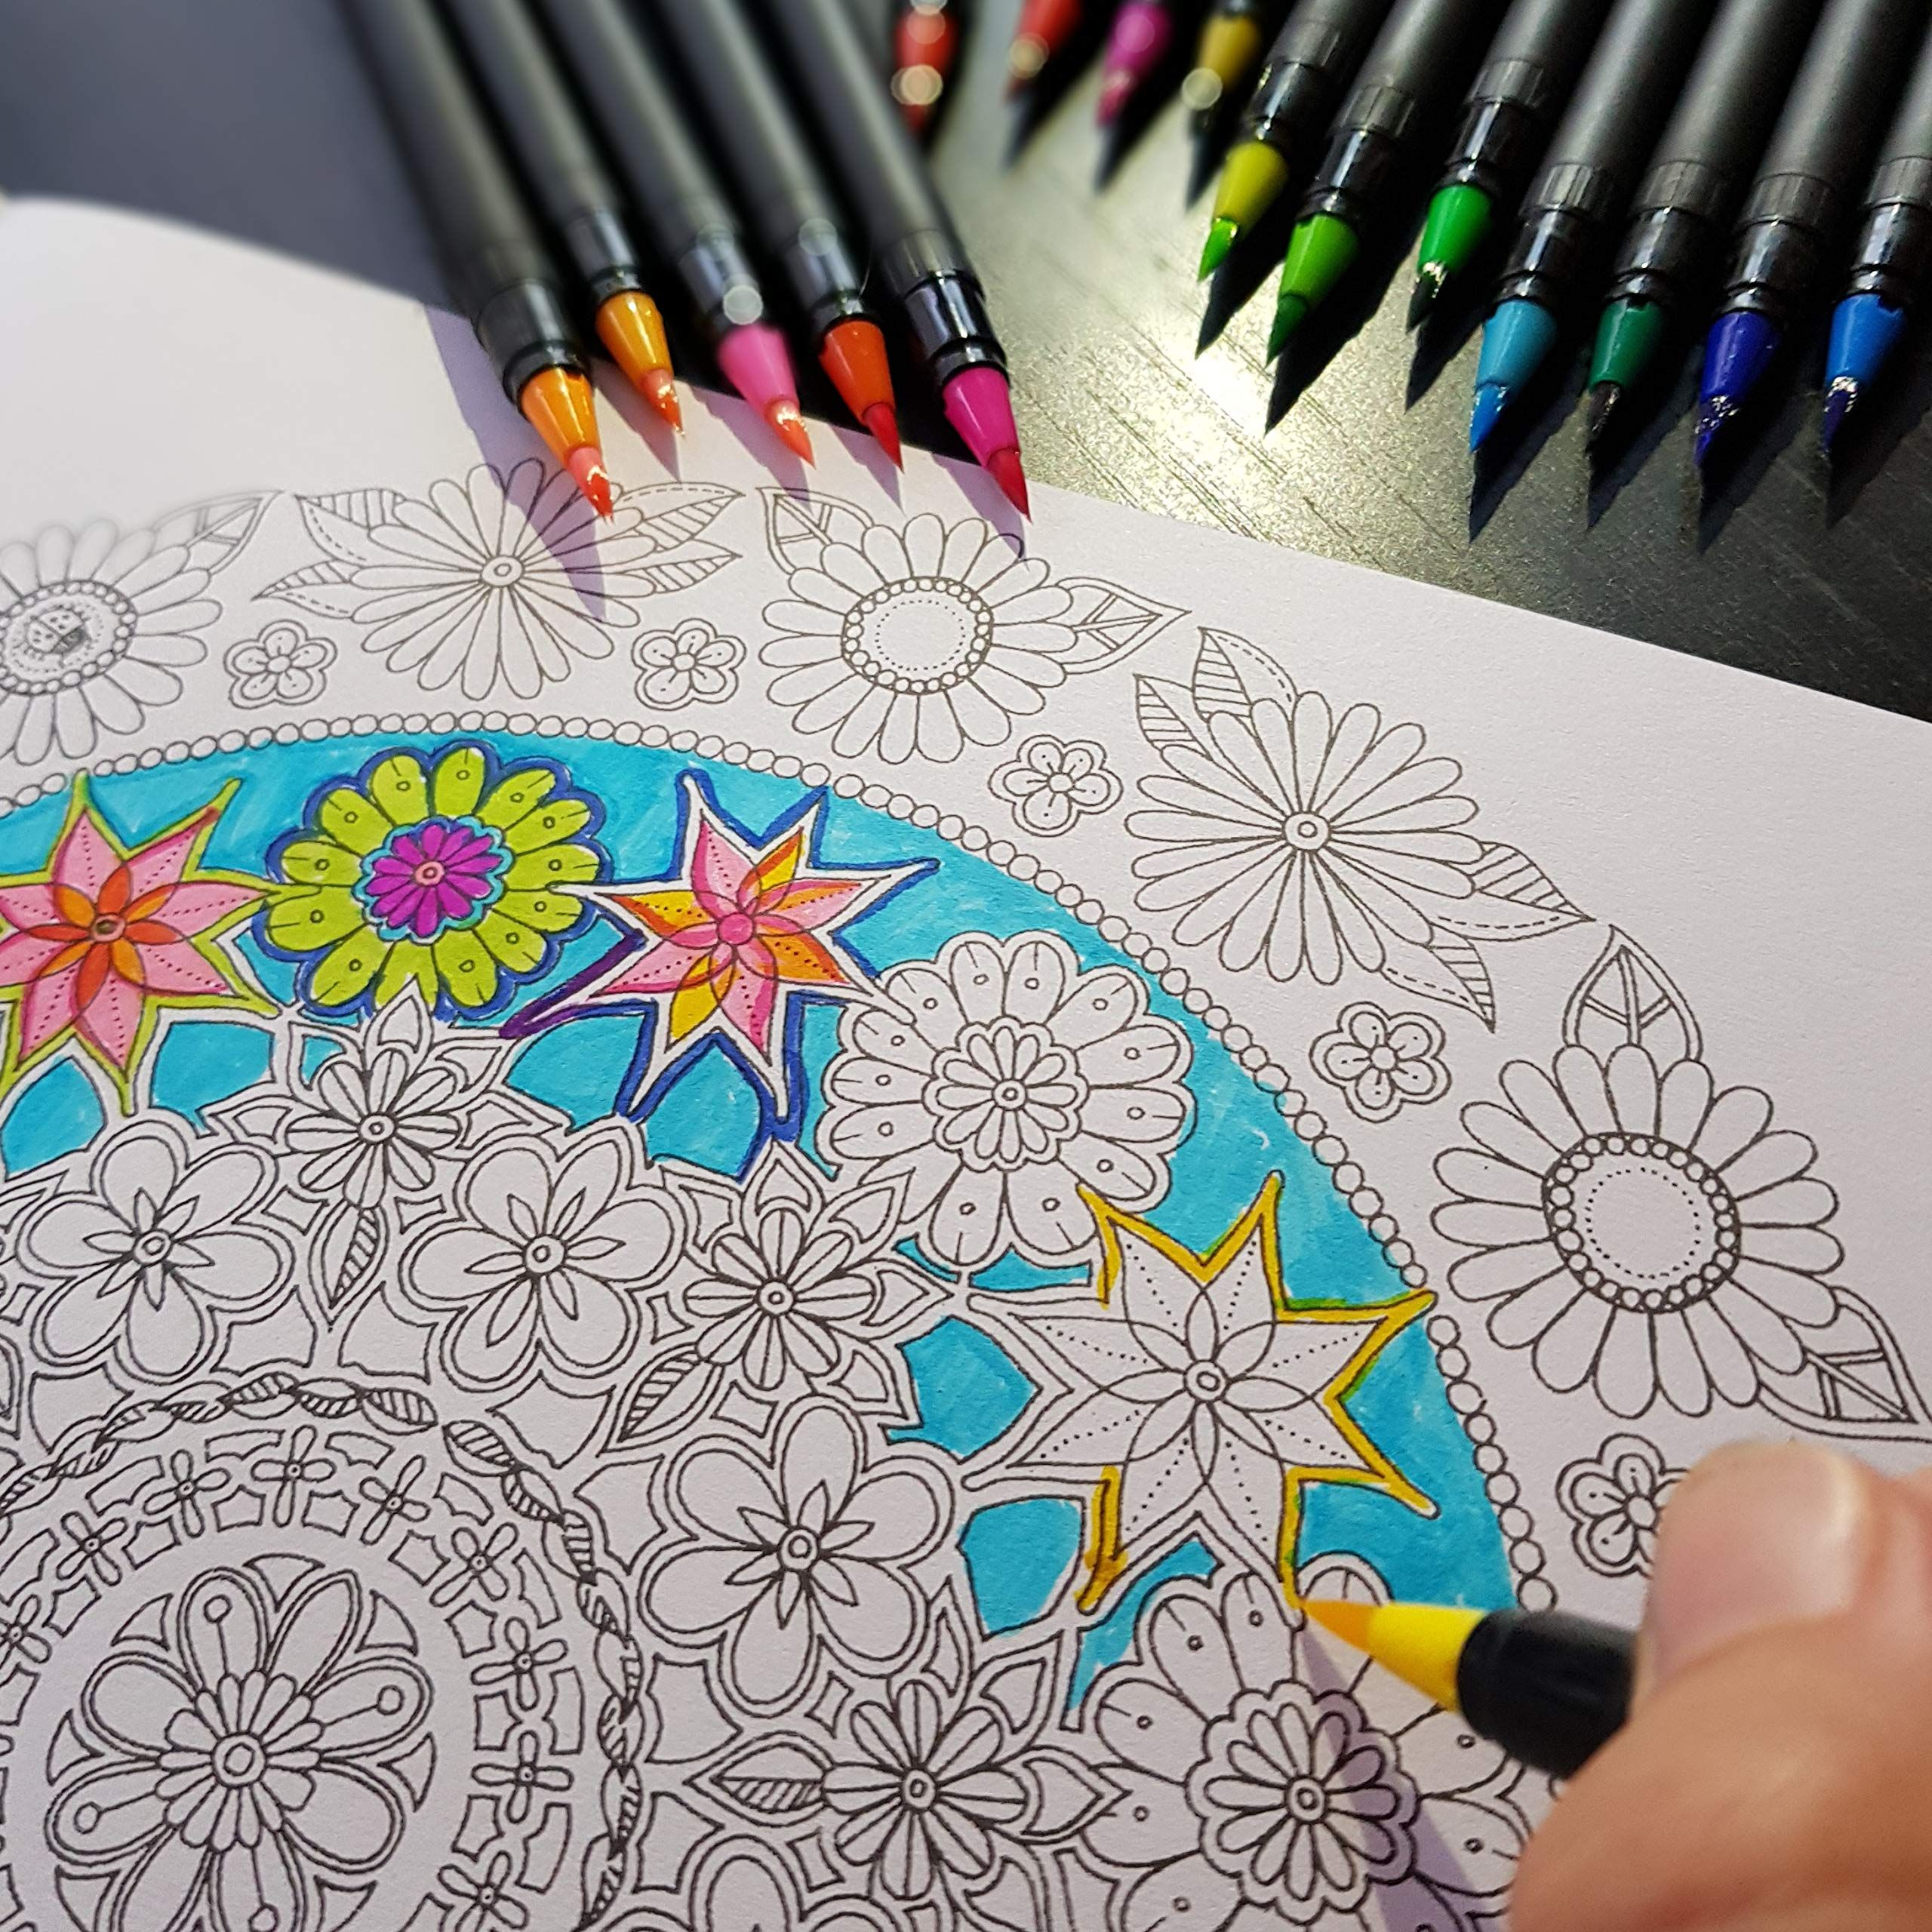 Pin By Hayal On Me Watercolor Brushes Watercolor Brush Pen Coloring Books